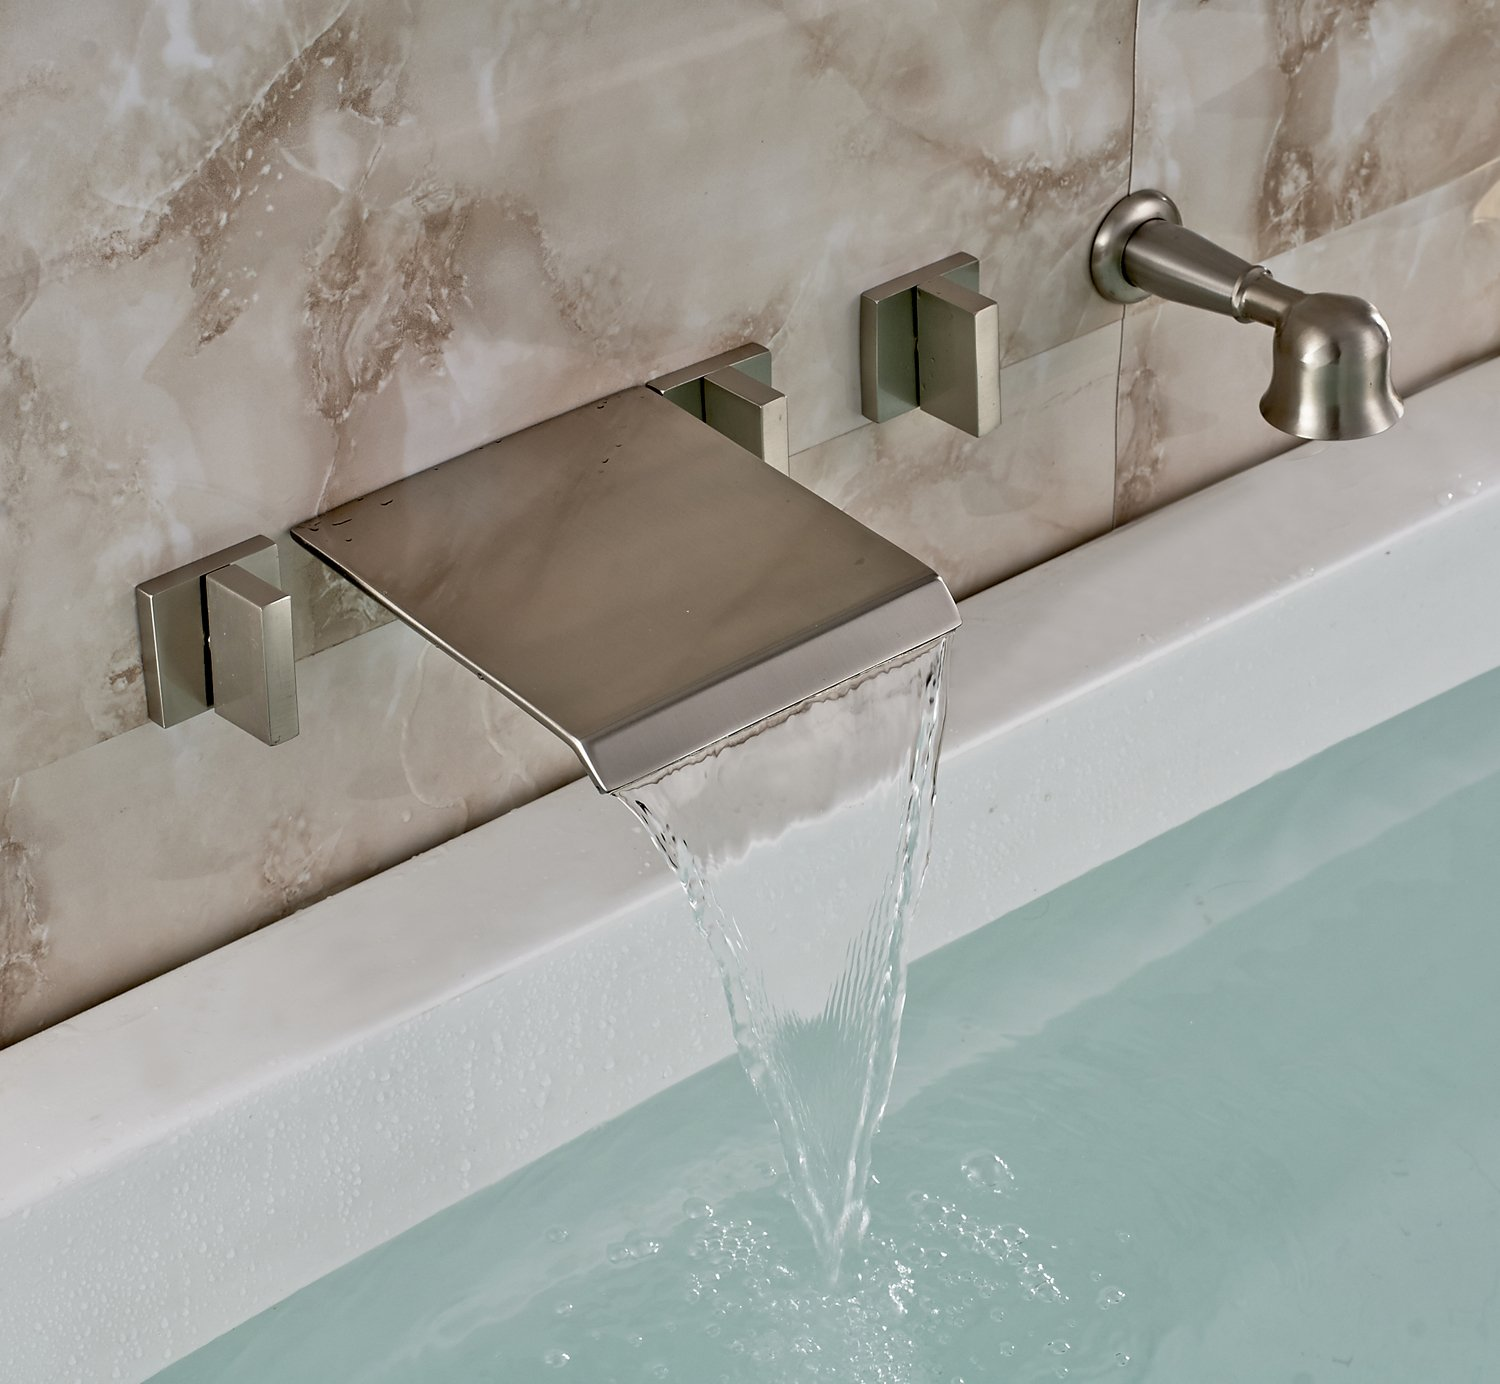 Rozin Brushed Nickel Wall Mounted Waterfall Tub Mixer Faucet Tap With Handheld  Shower     Amazon.com